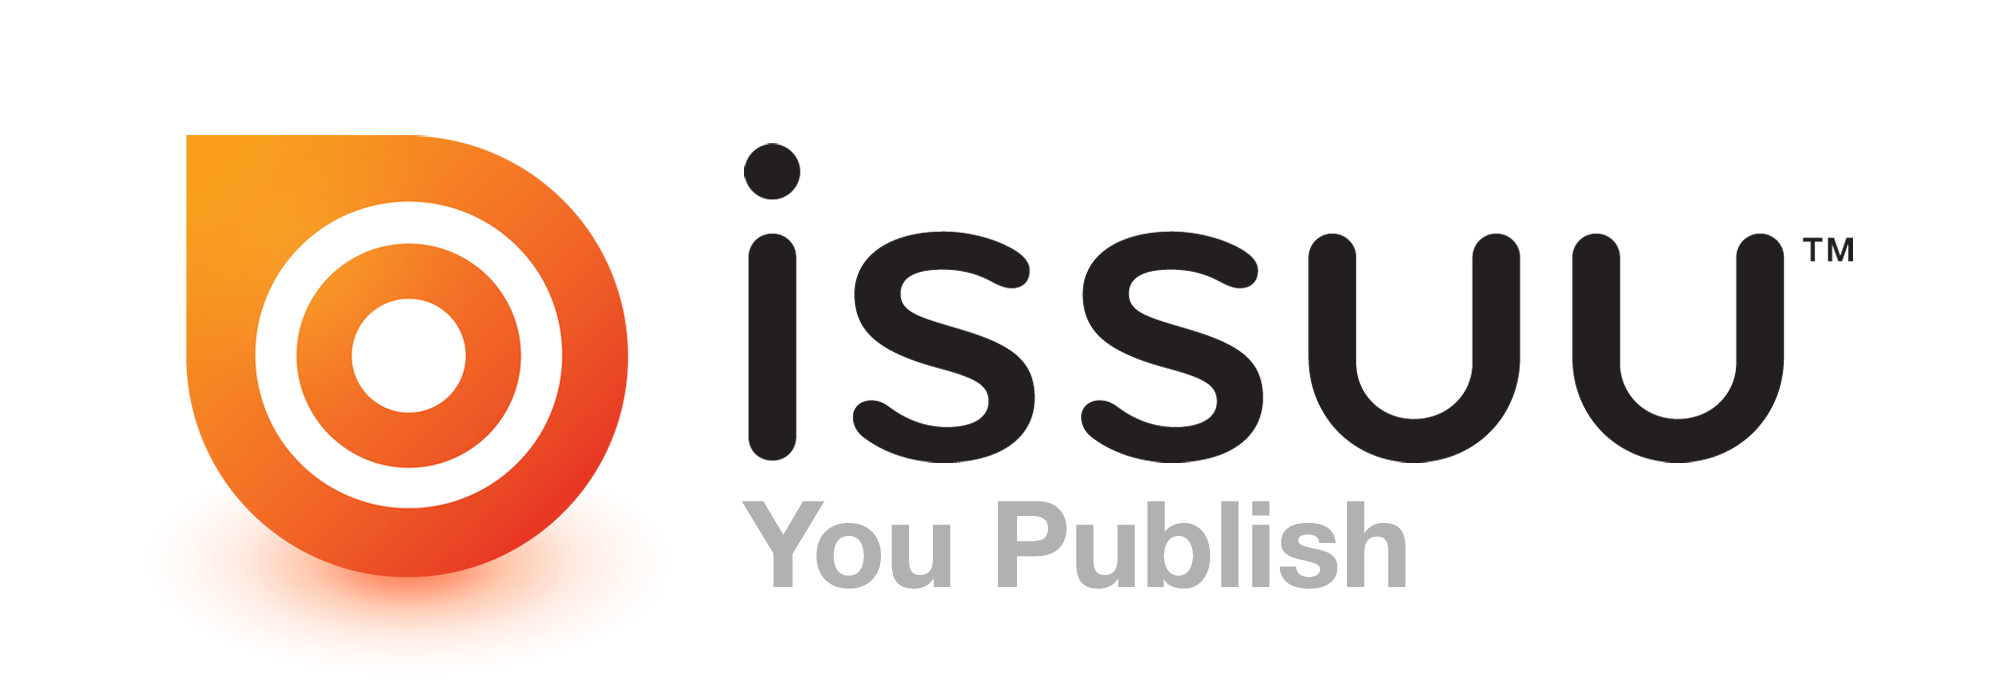 Newspaper clipart book magazine. Issuu is a digital